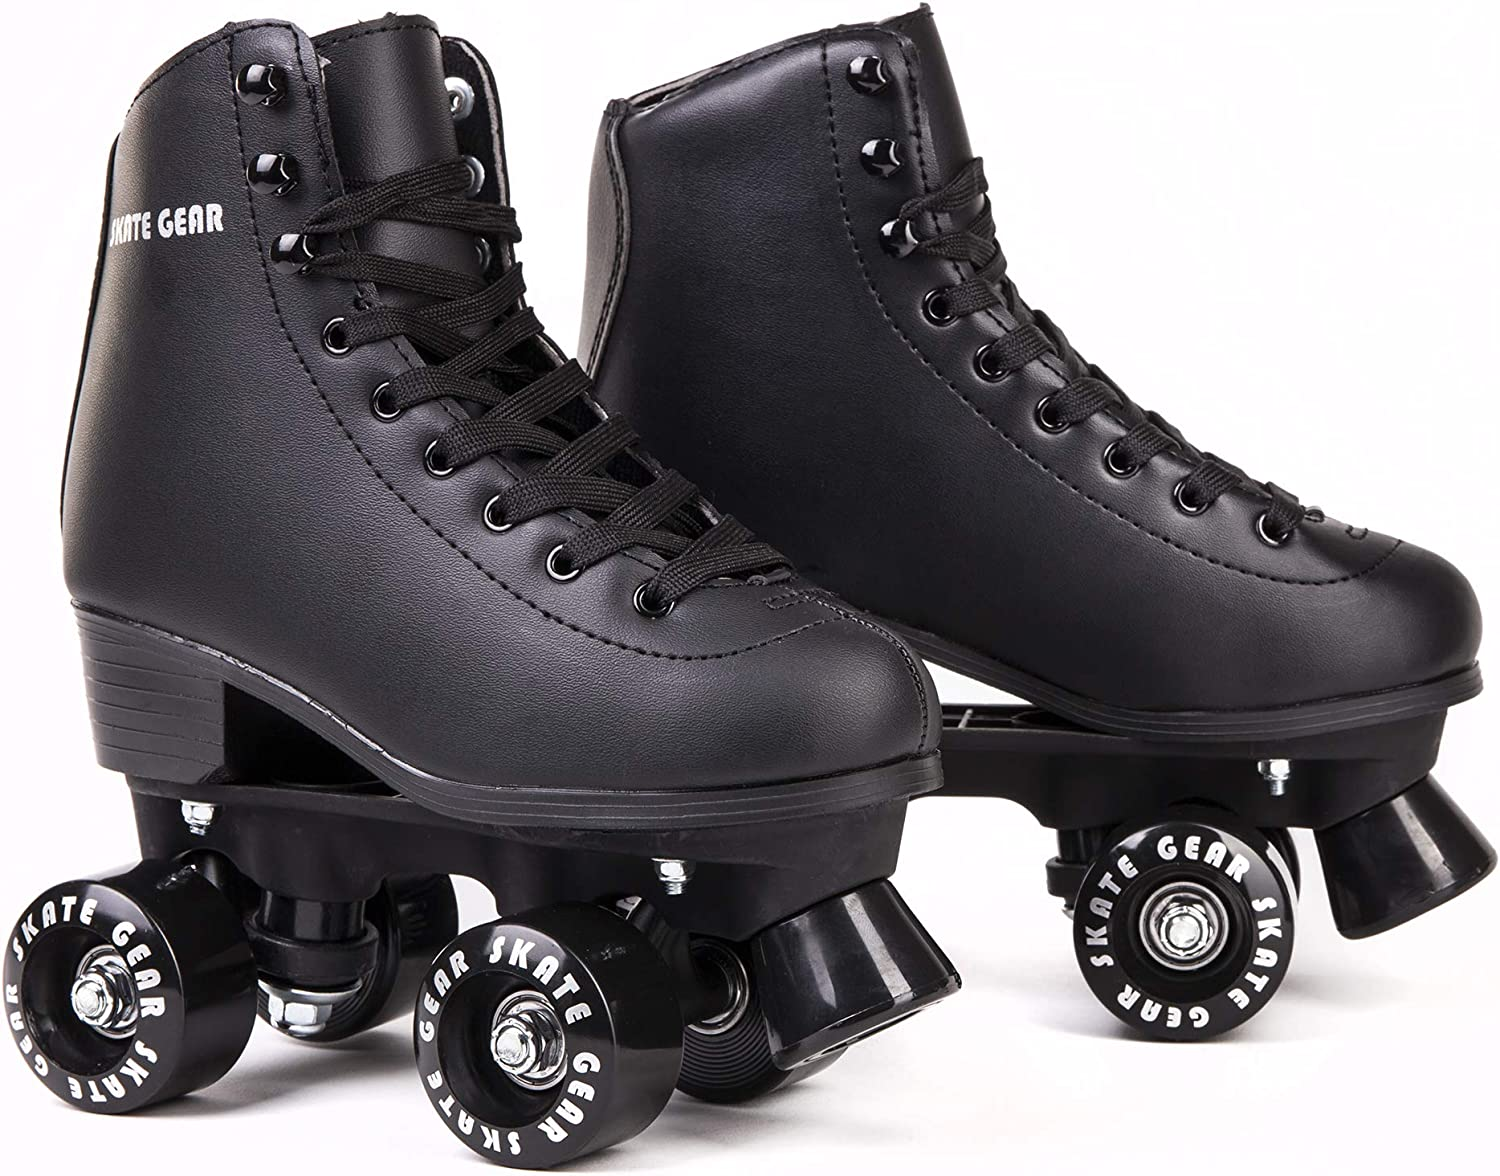 C SEVEN Skate Gear Cute Roller Skates for Kids and Adults / US